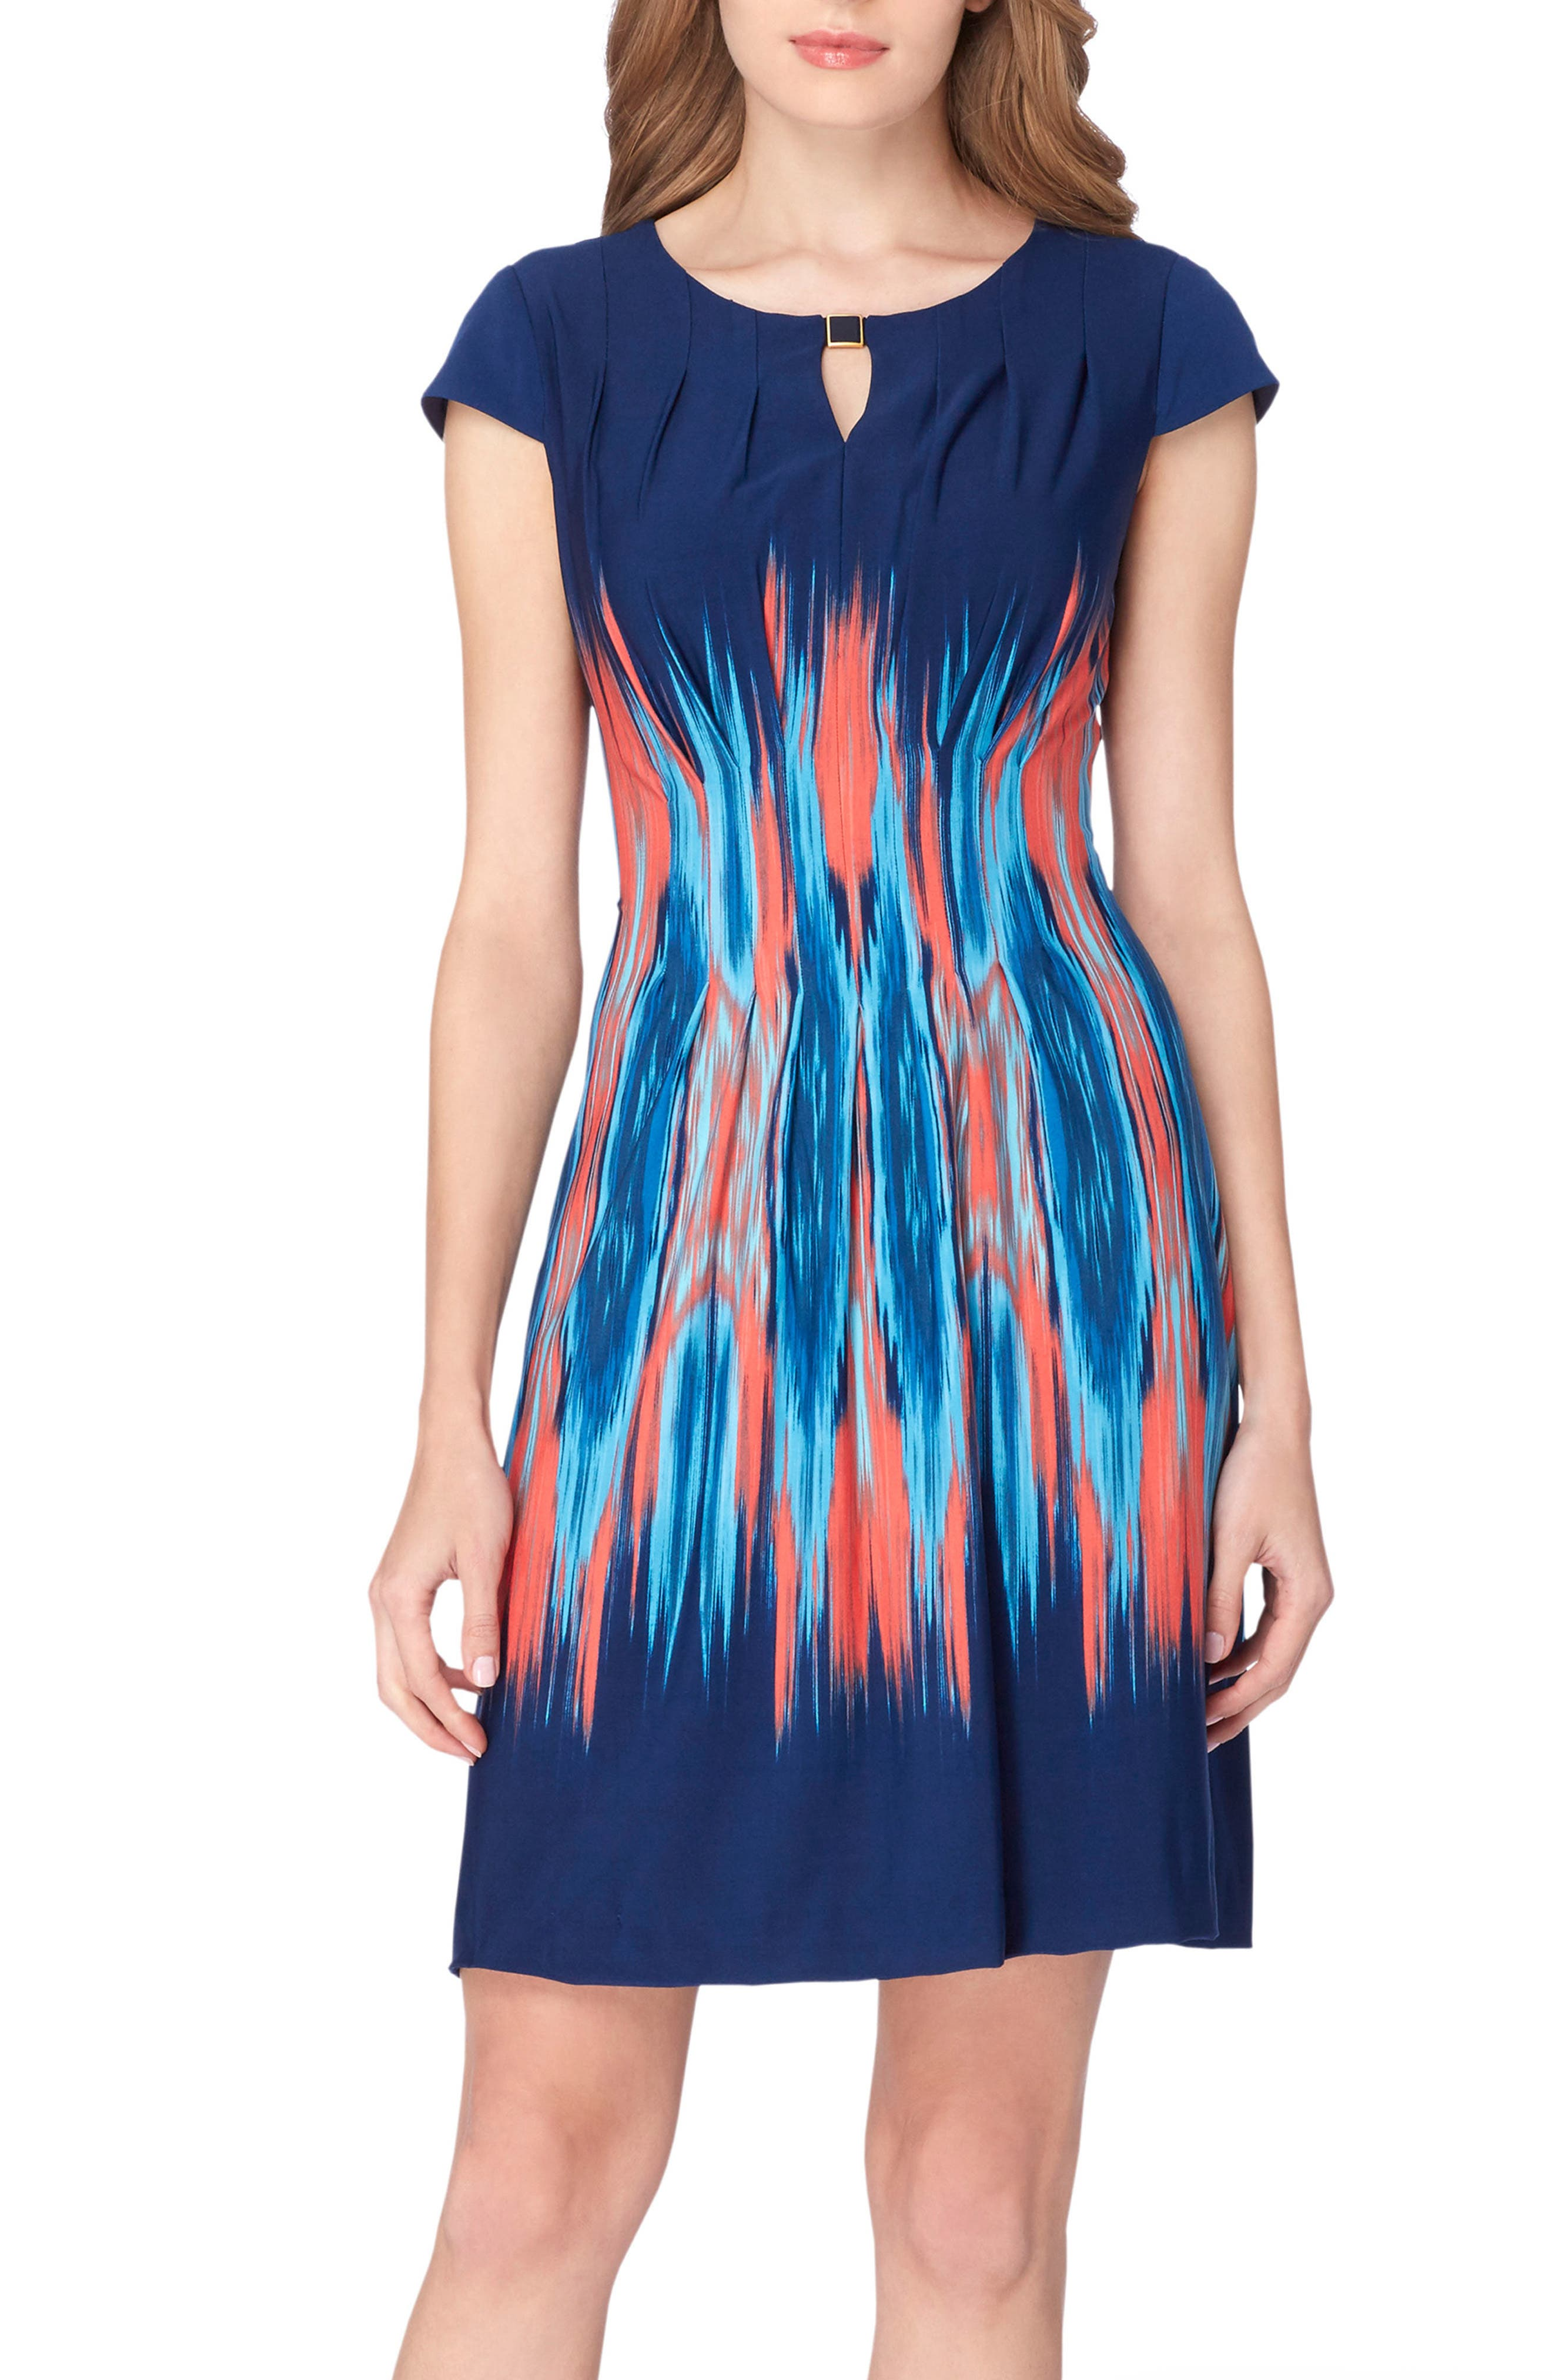 Flame Print Jersey Sheath Dress,                         Main,                         color, Navy/ Coral/ Turquoise